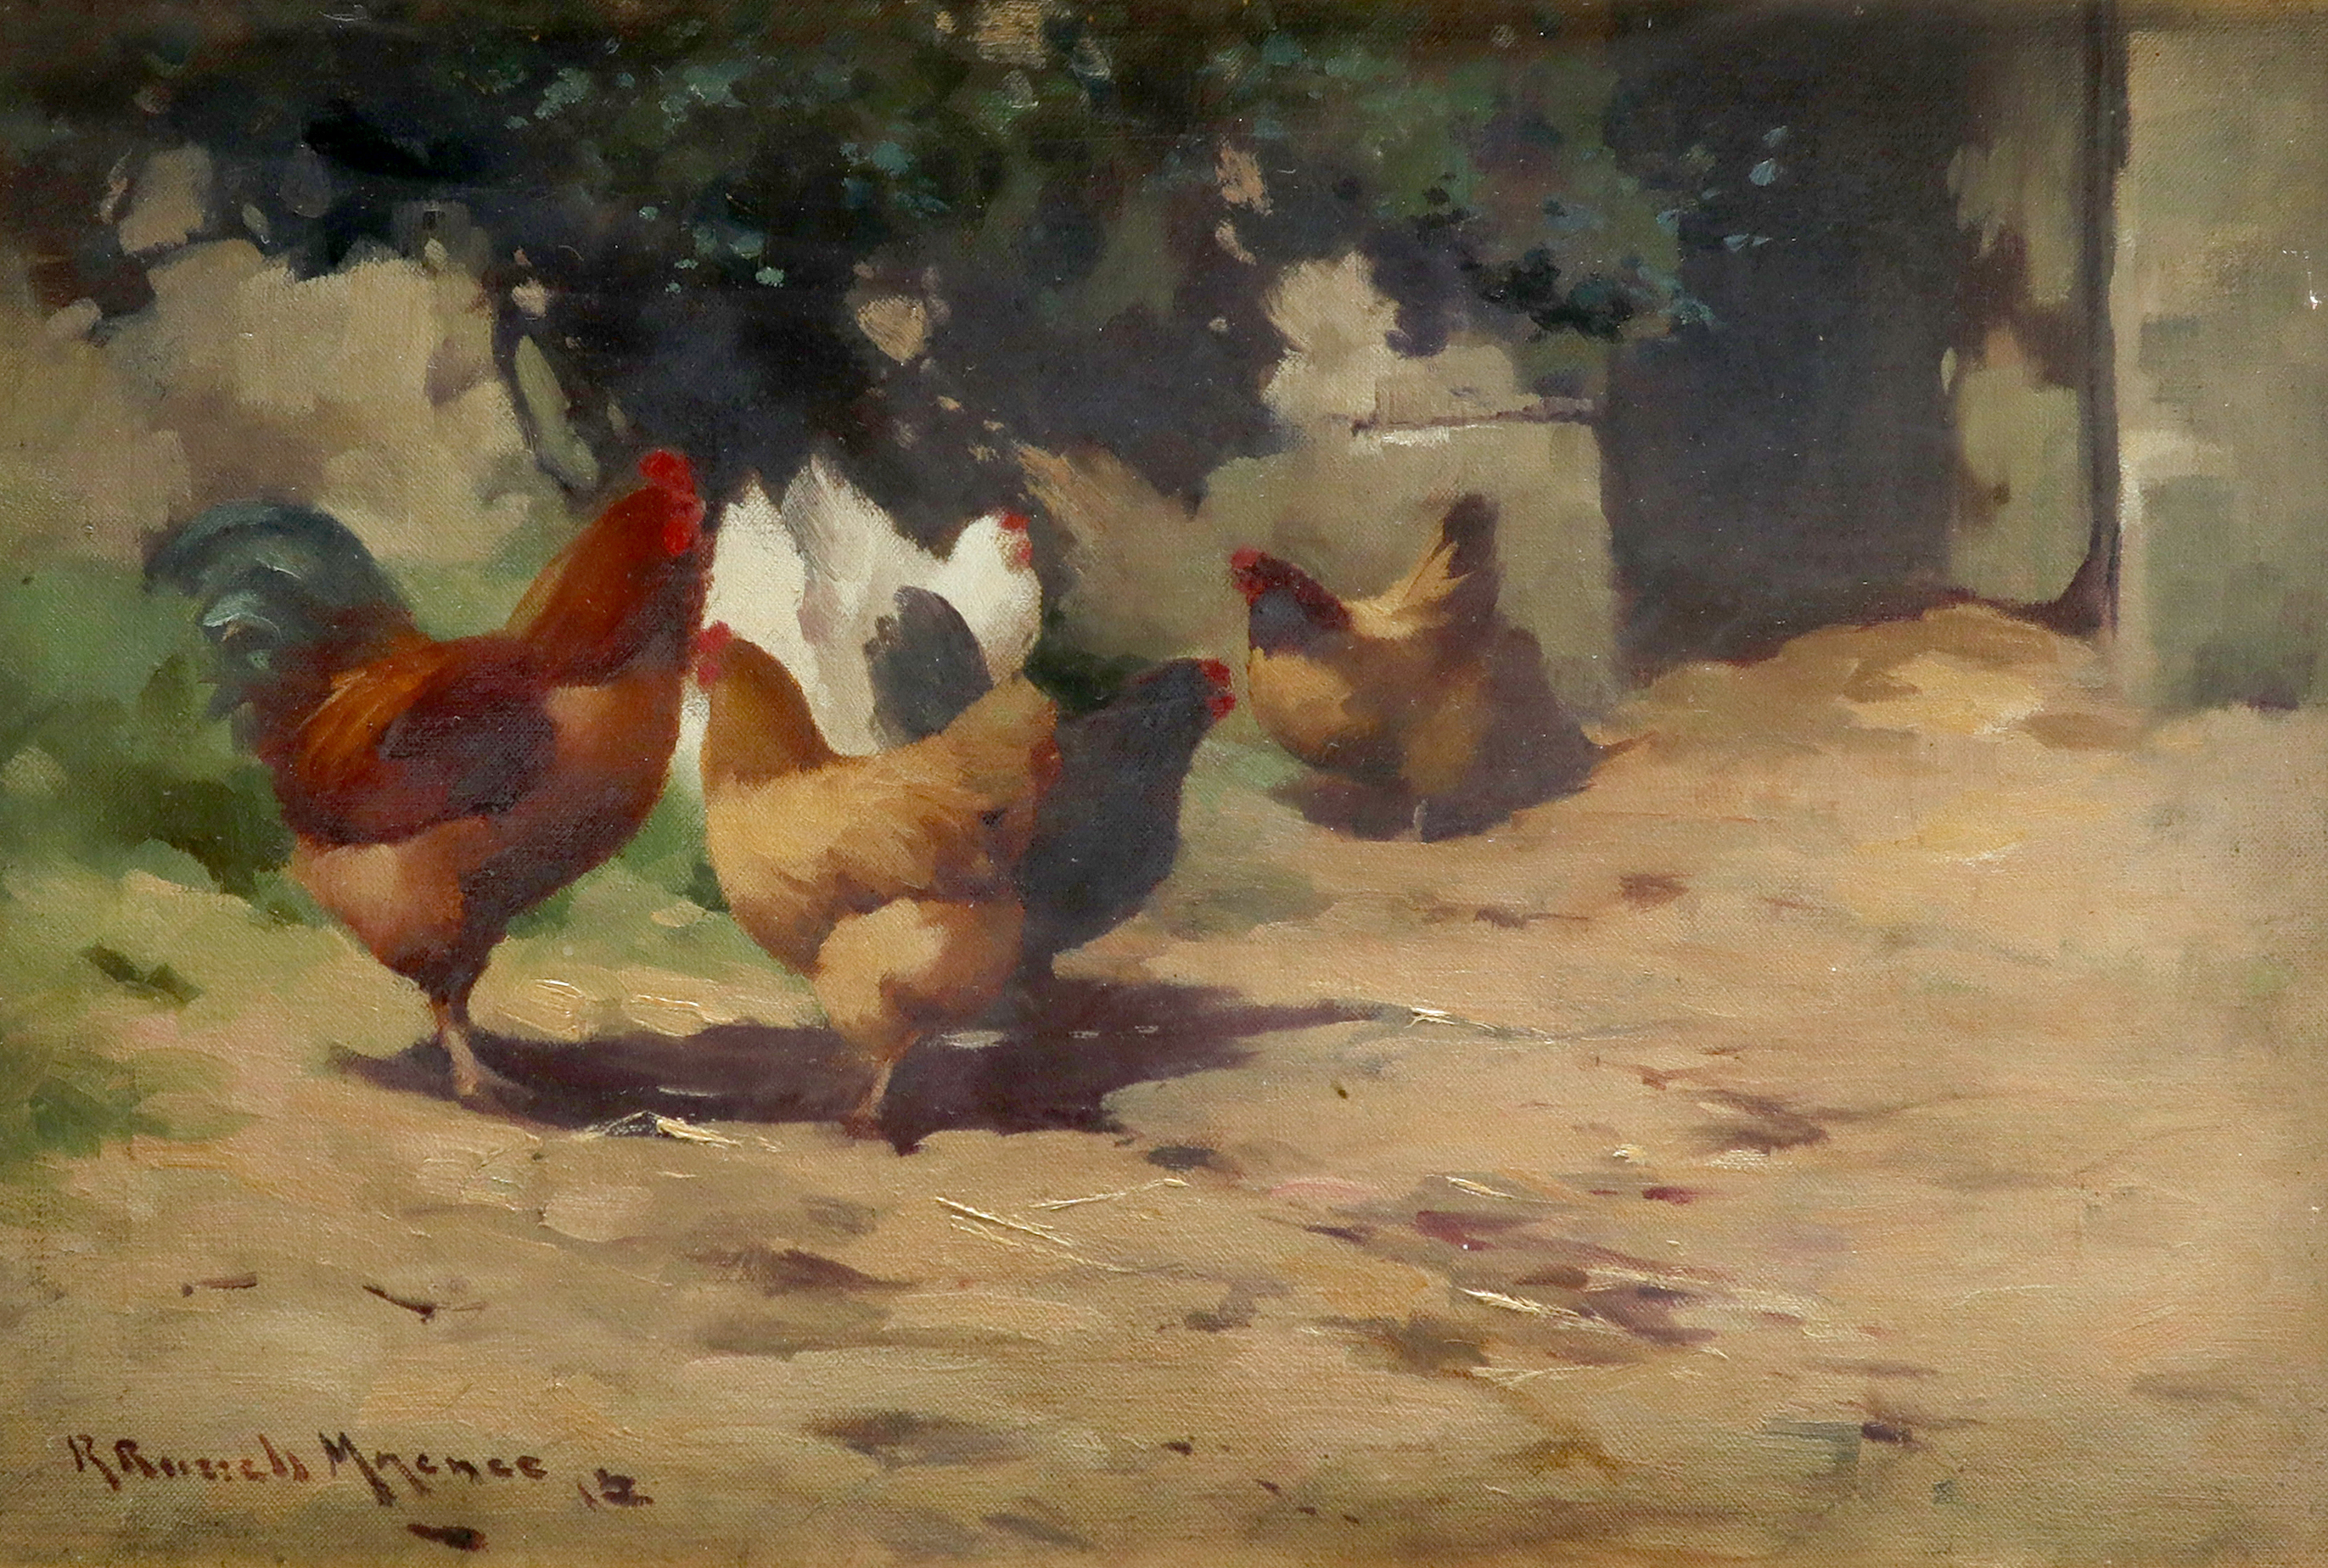 ‡Robert Russell Macnee (Scottish 1880-1952) The poultry yard Signed and dated R Russell Macnee 12 (